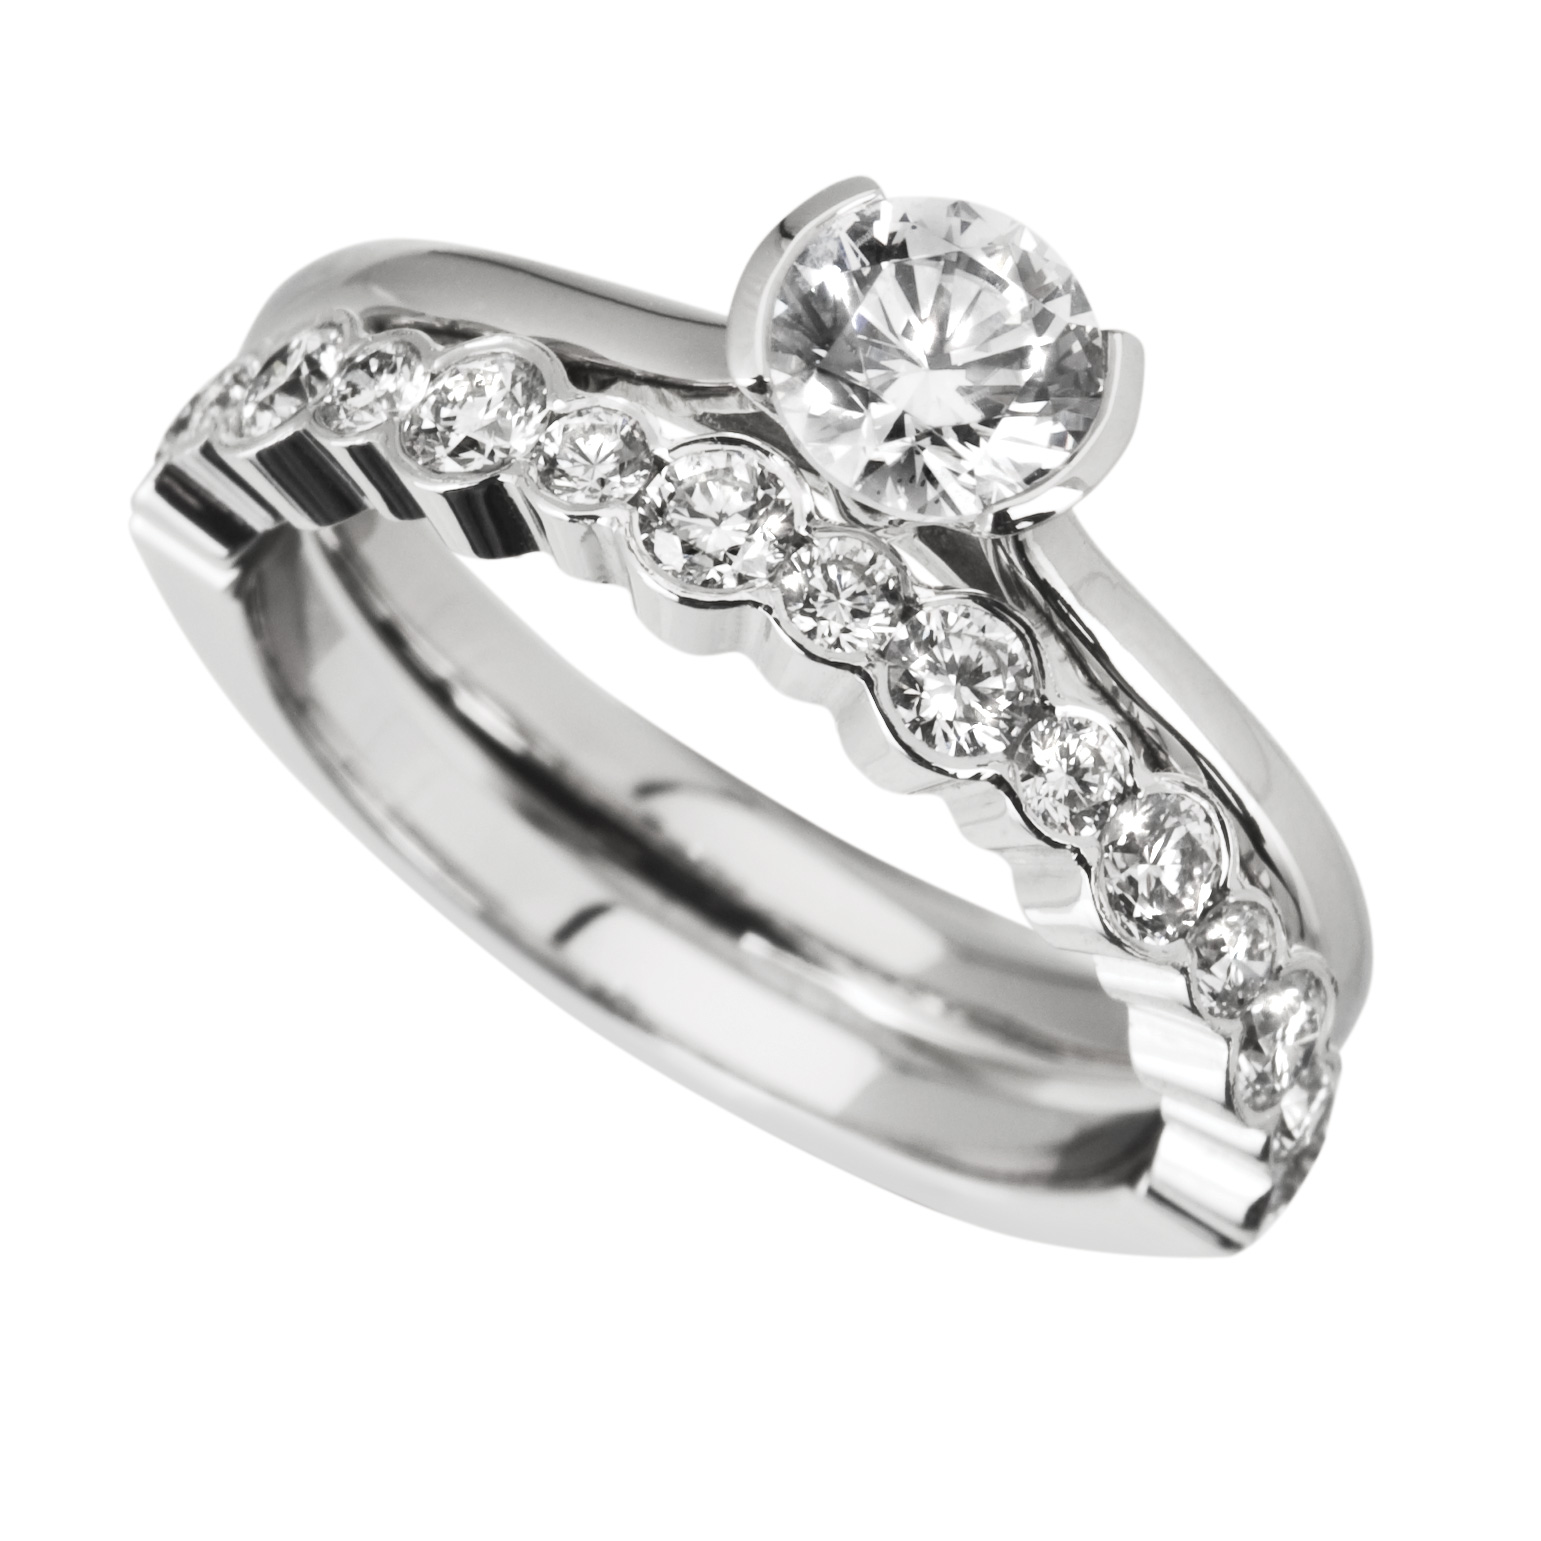 Diamonds and Rings the Online Jeweller Launches a New